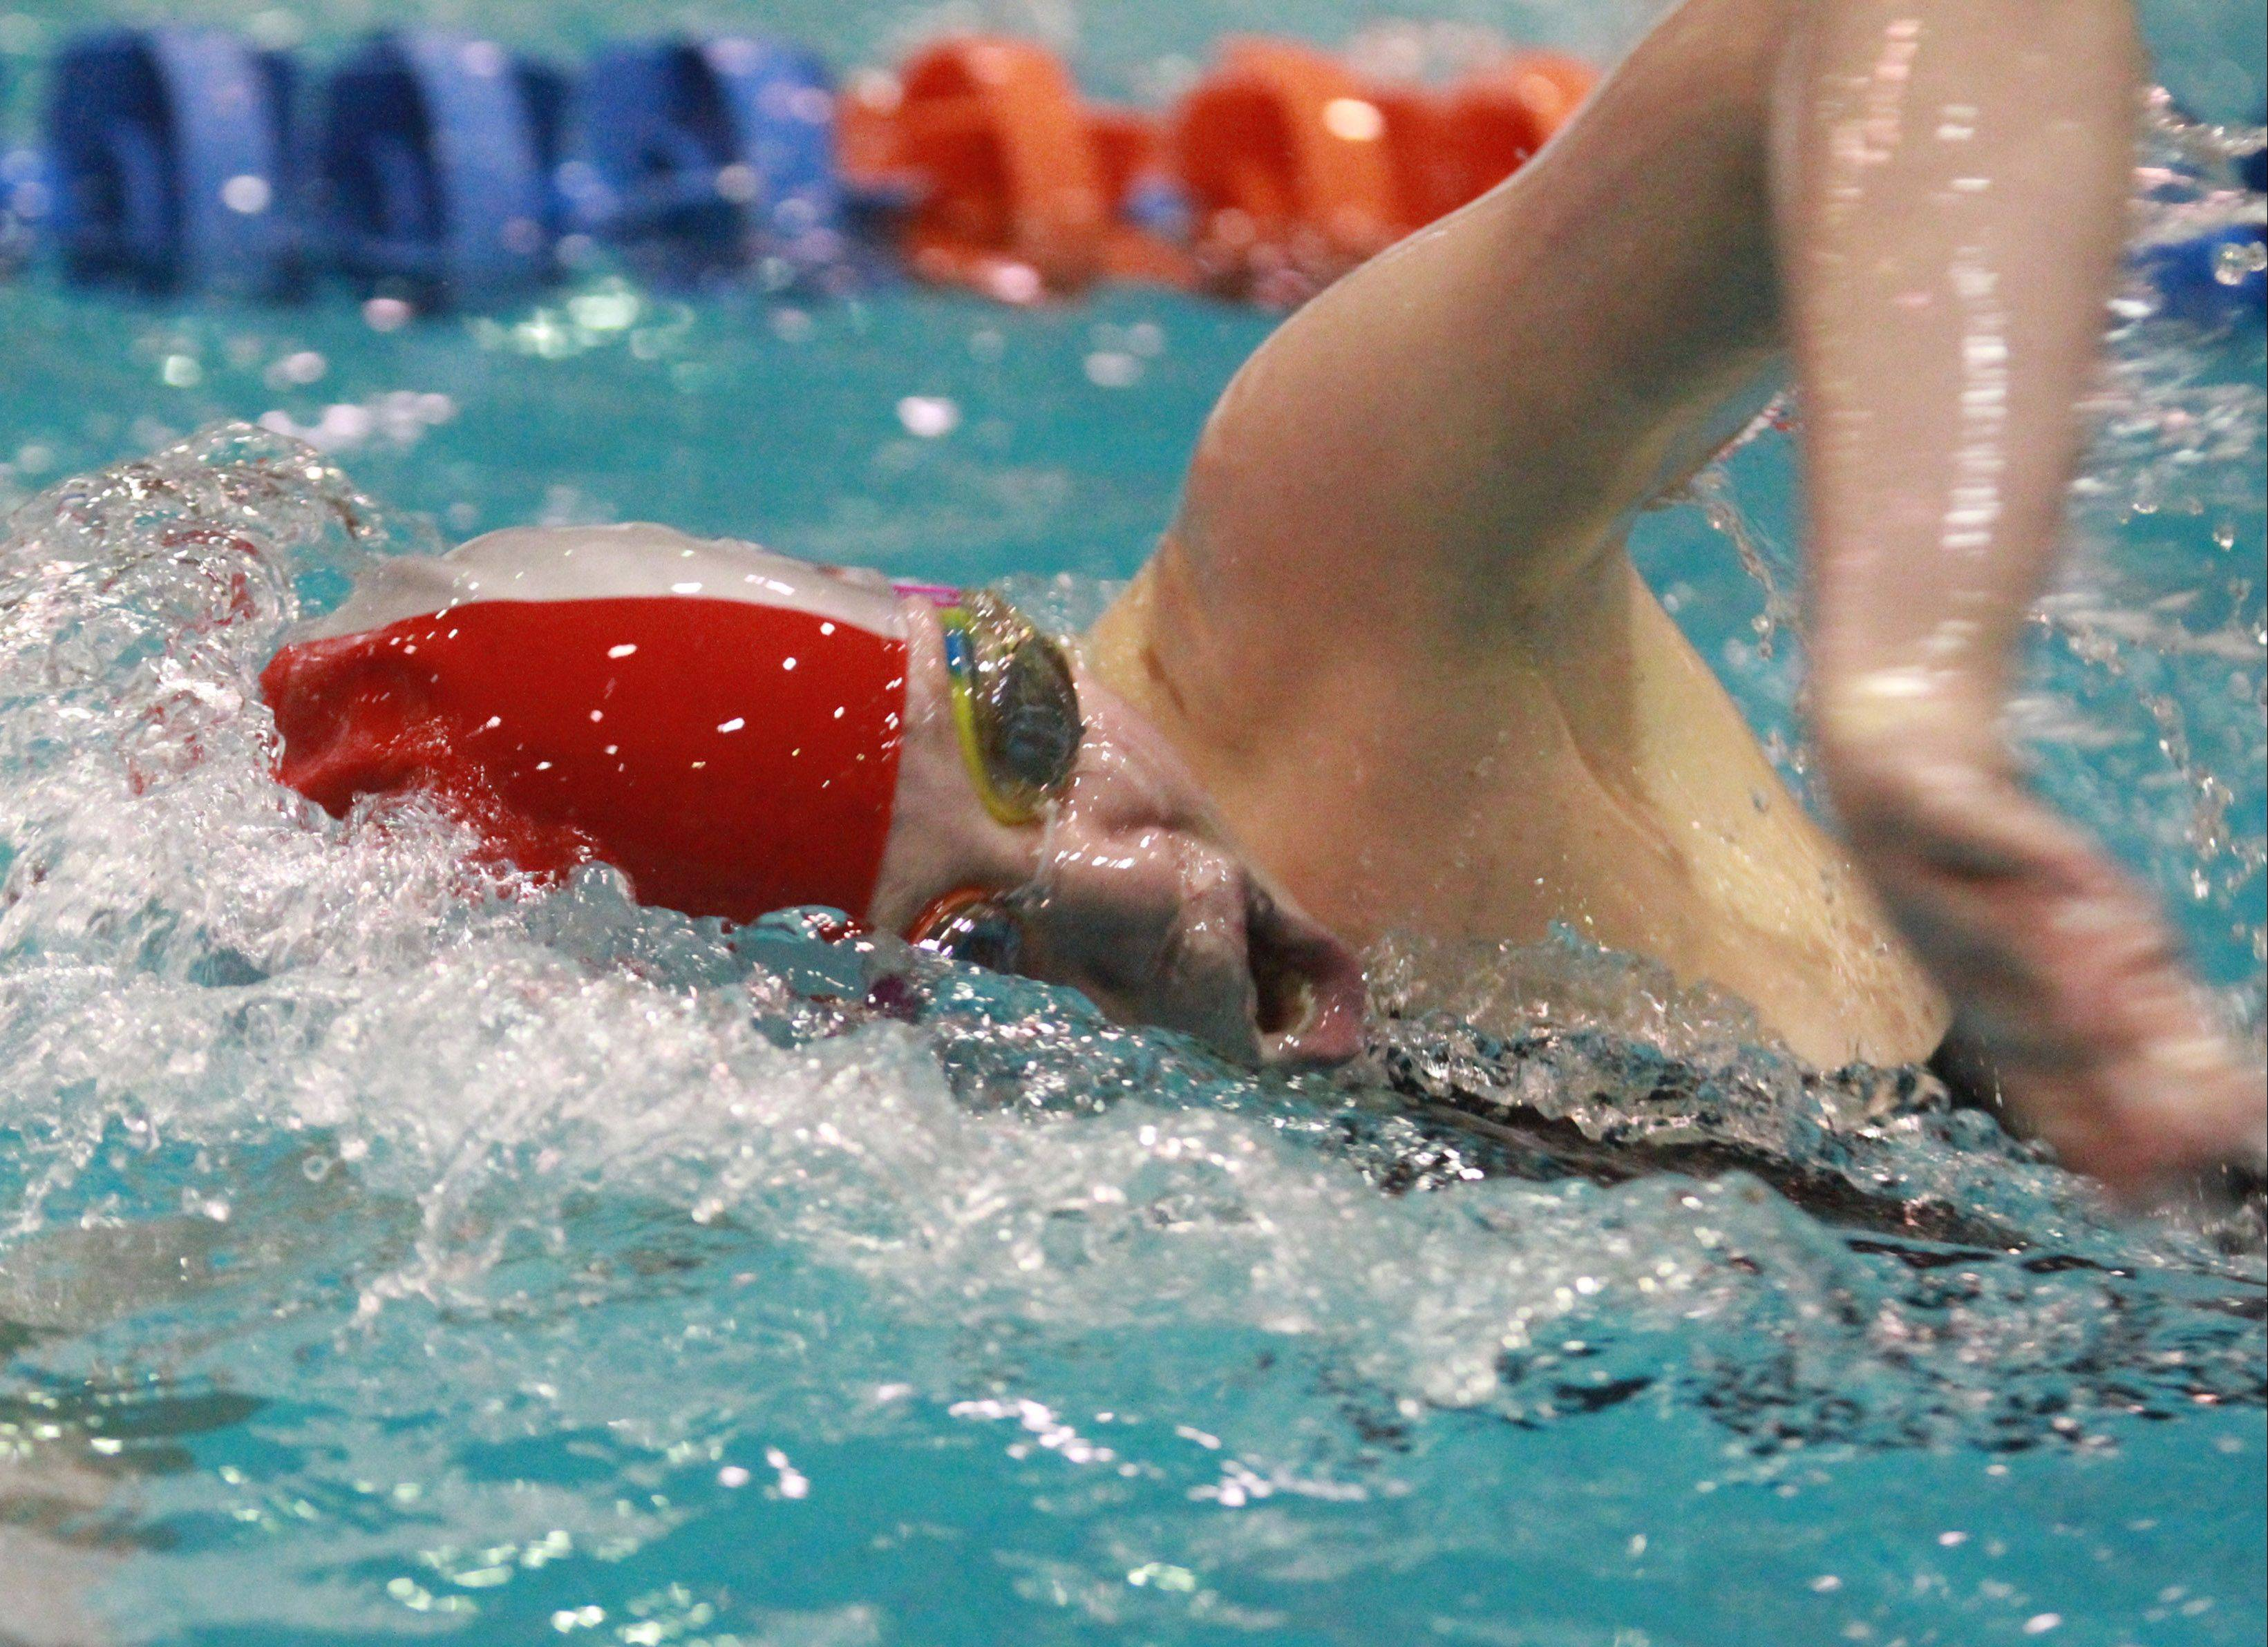 Mundelein�s Erin Falconer placed fourth in the 200-yard freestyle at the IHSA state finals in Evanston on Saturday.